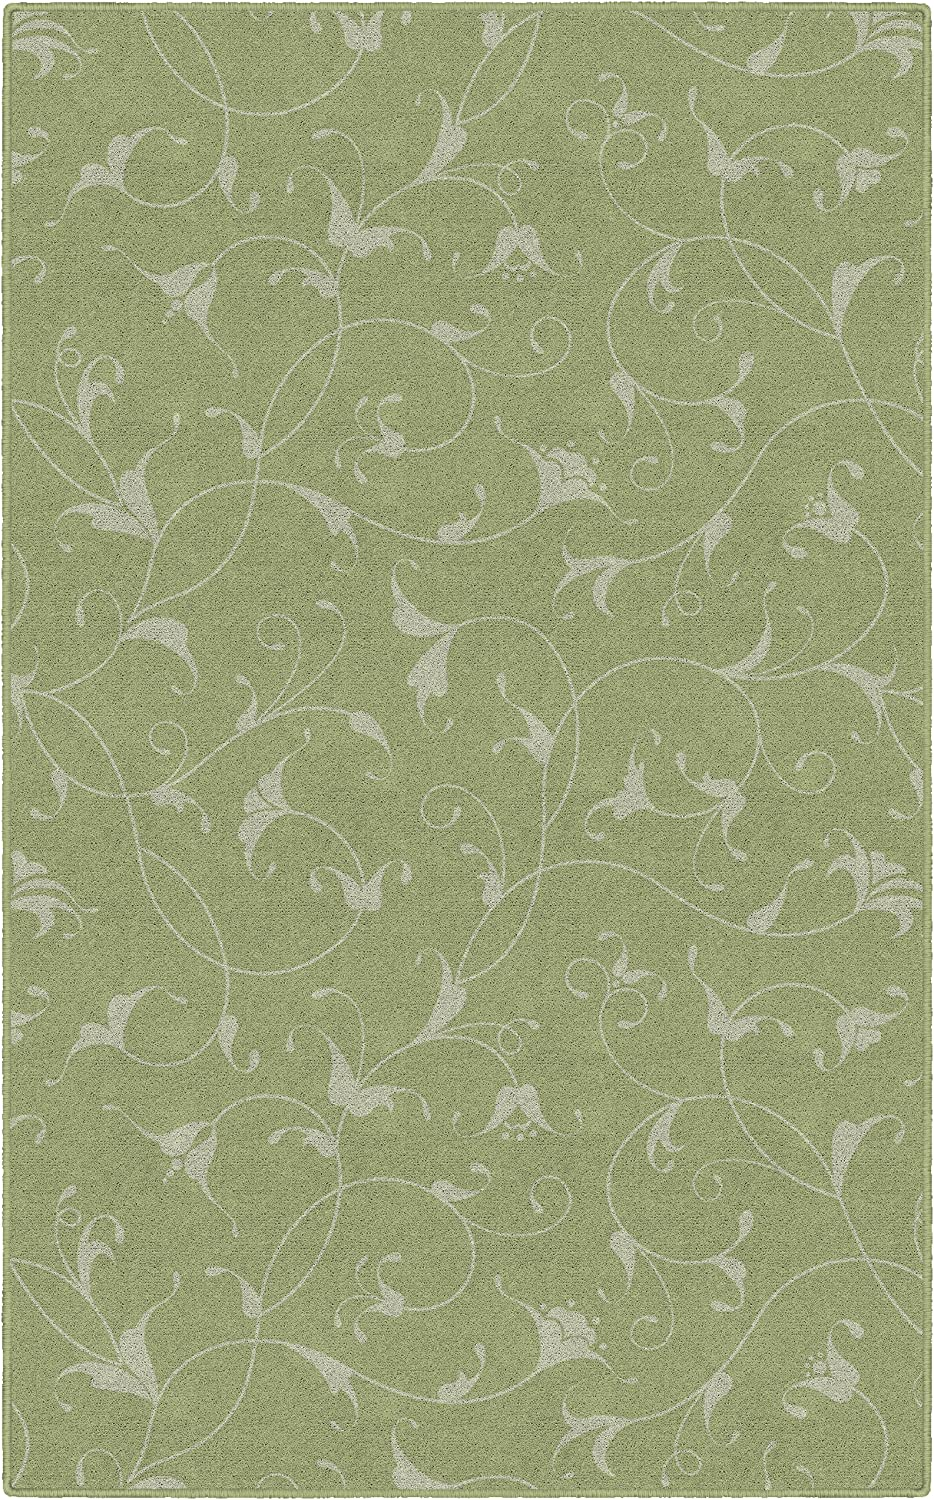 Brumlow Mills Caitlin Simple Home Indoor Area Rug with Floral Print Pattern, Perfect for Any Living Room Decor, Dining Room, Kitchen Rug, or Bedroom Area Rug, 3'4